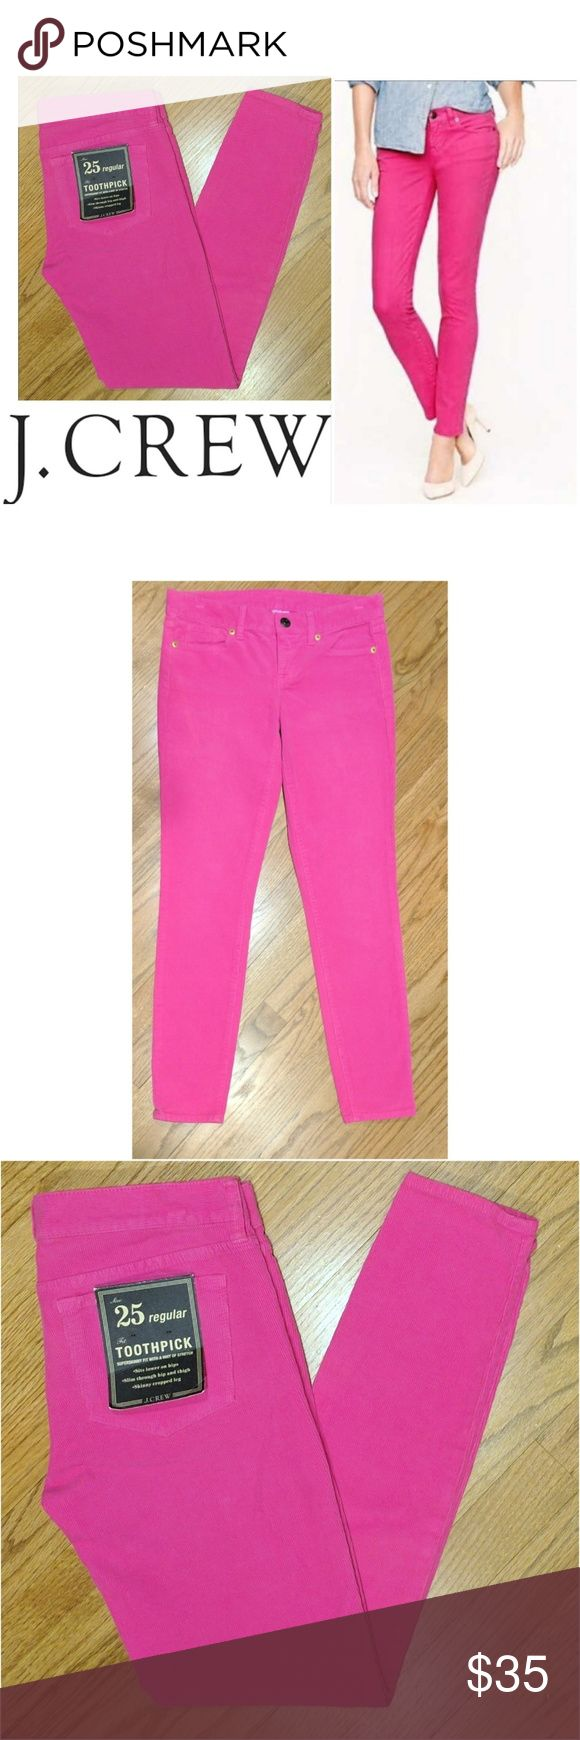 """NWT Toothpick J. Crew hot pink pants These sexy J. Crew toothpick pants are perfect for dressing up any occasion! Hot pink corduroy cotton material with 1% spandex for stretch fit. Traditional 5 pocket style. Size 25 regular, 28"""" inseam. Dress up or down with flats and blouses, heels and tanktops... Possibilities are endless! Grab yours for less and look sexy in J. Crew! J. Crew Pants"""